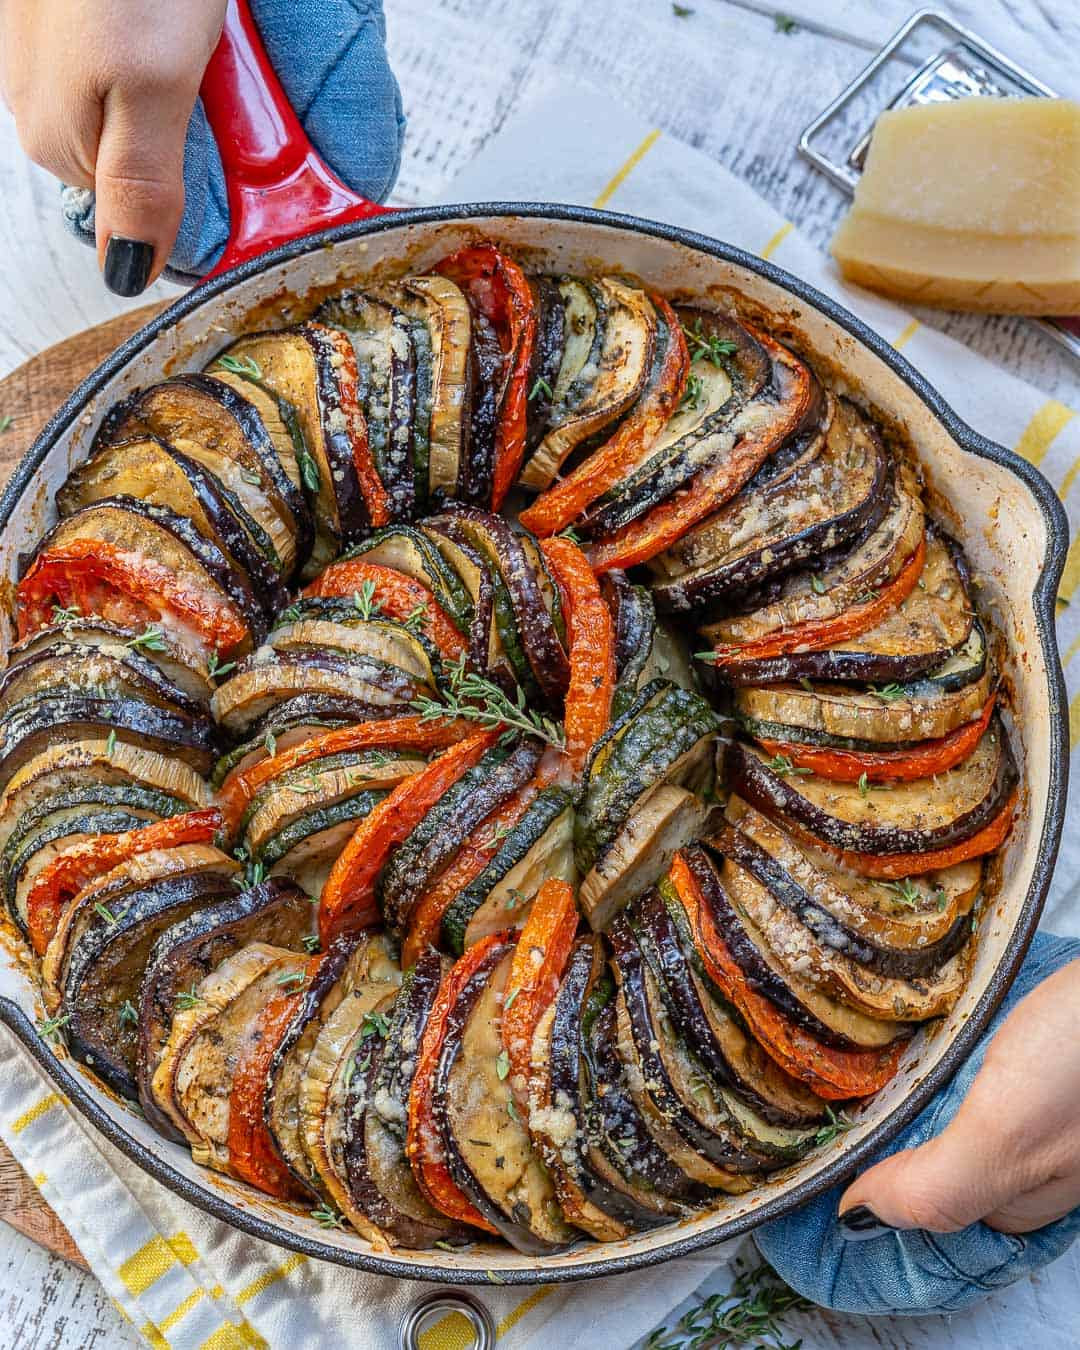 roasted eggplant recipe in dish, top view